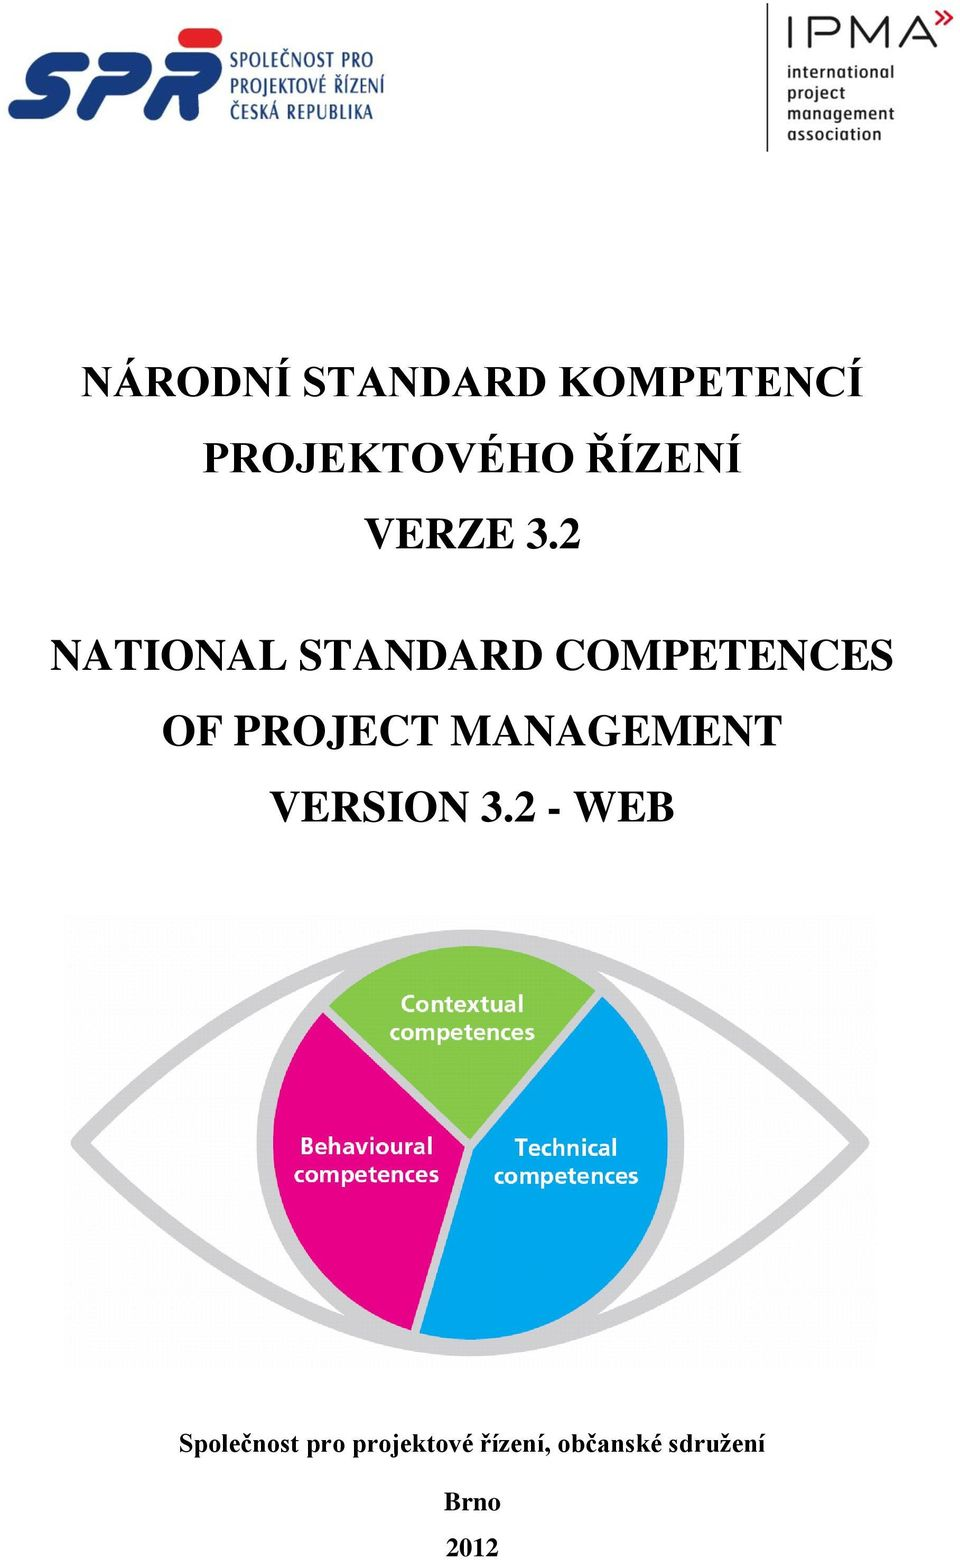 2 NATIONAL STANDARD COMPETENCES OF PROJECT